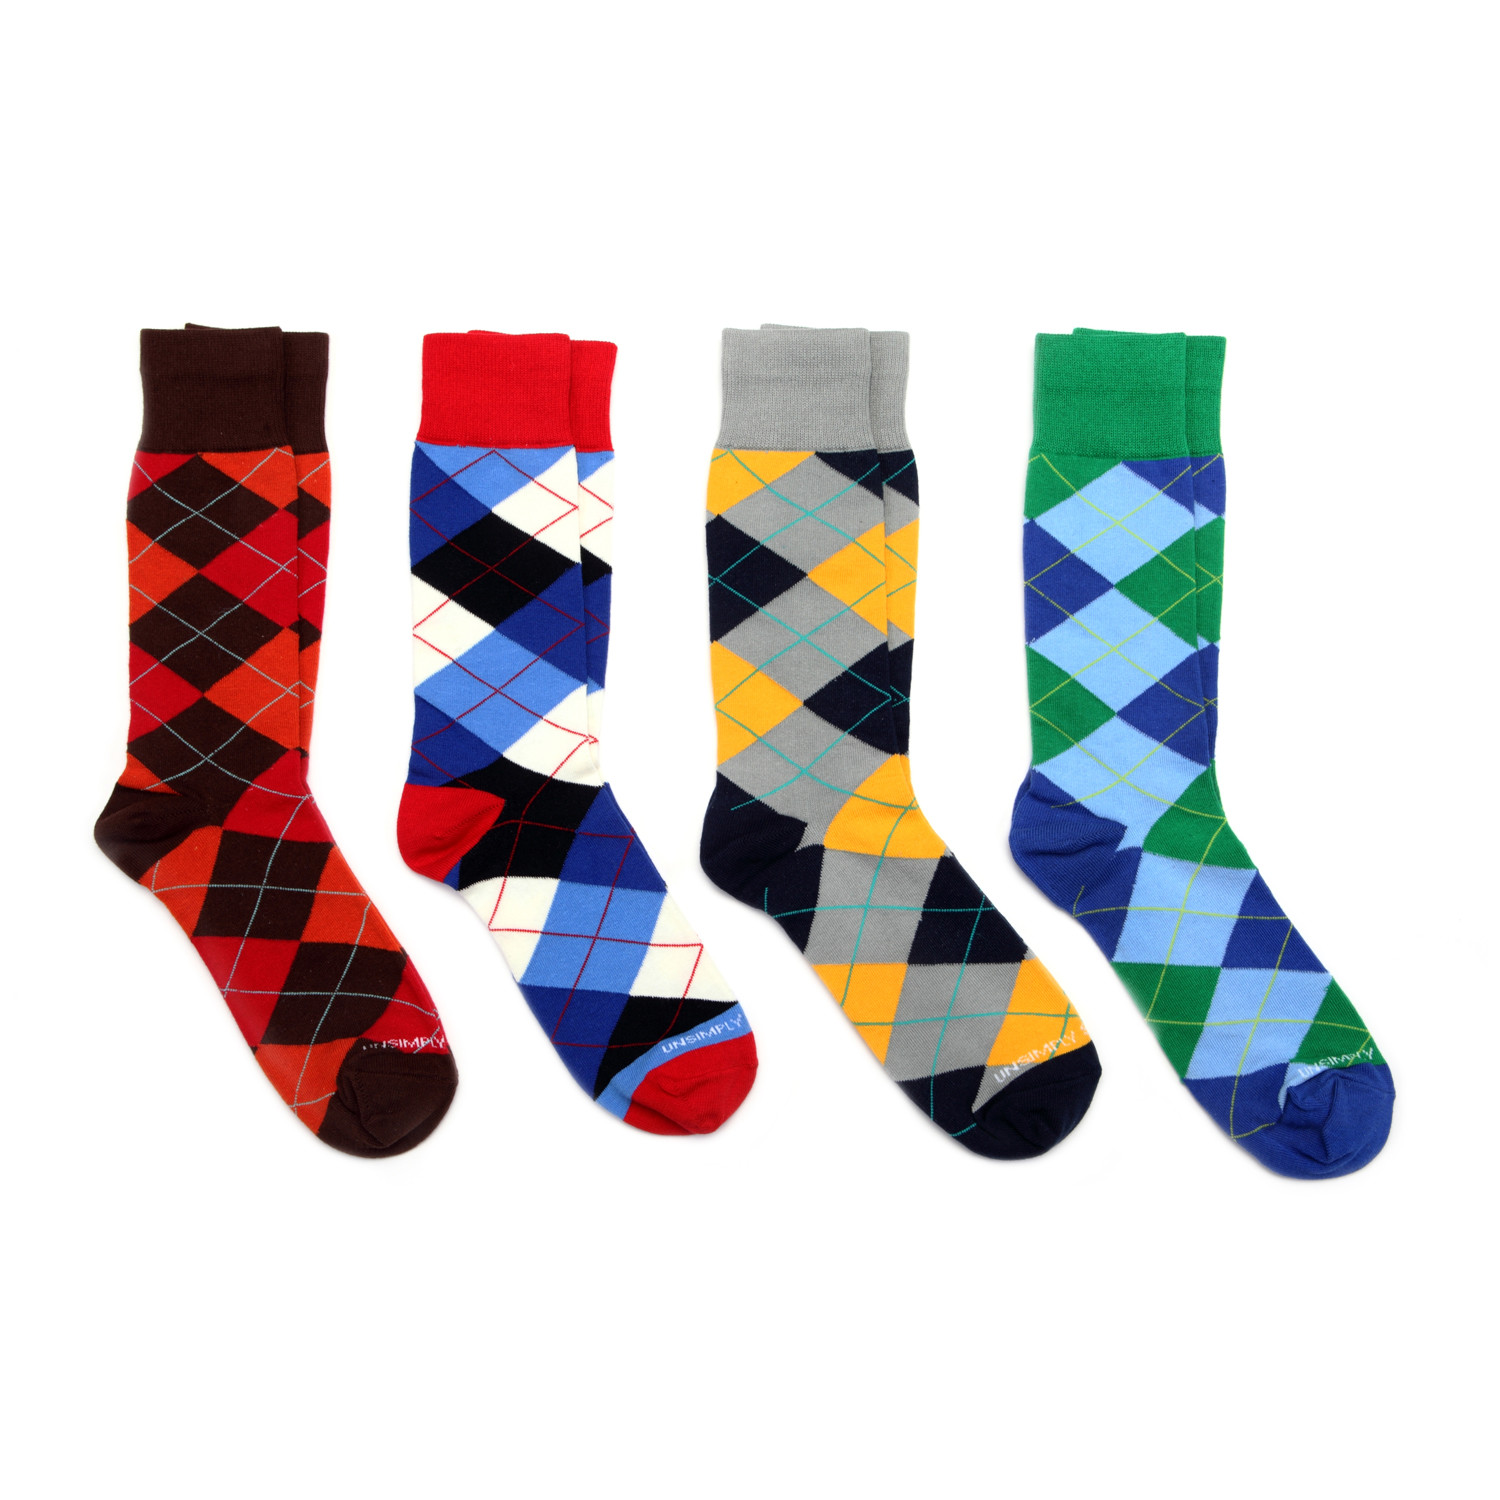 Dress socks argyle pack of 4 unsimply stitched touch of